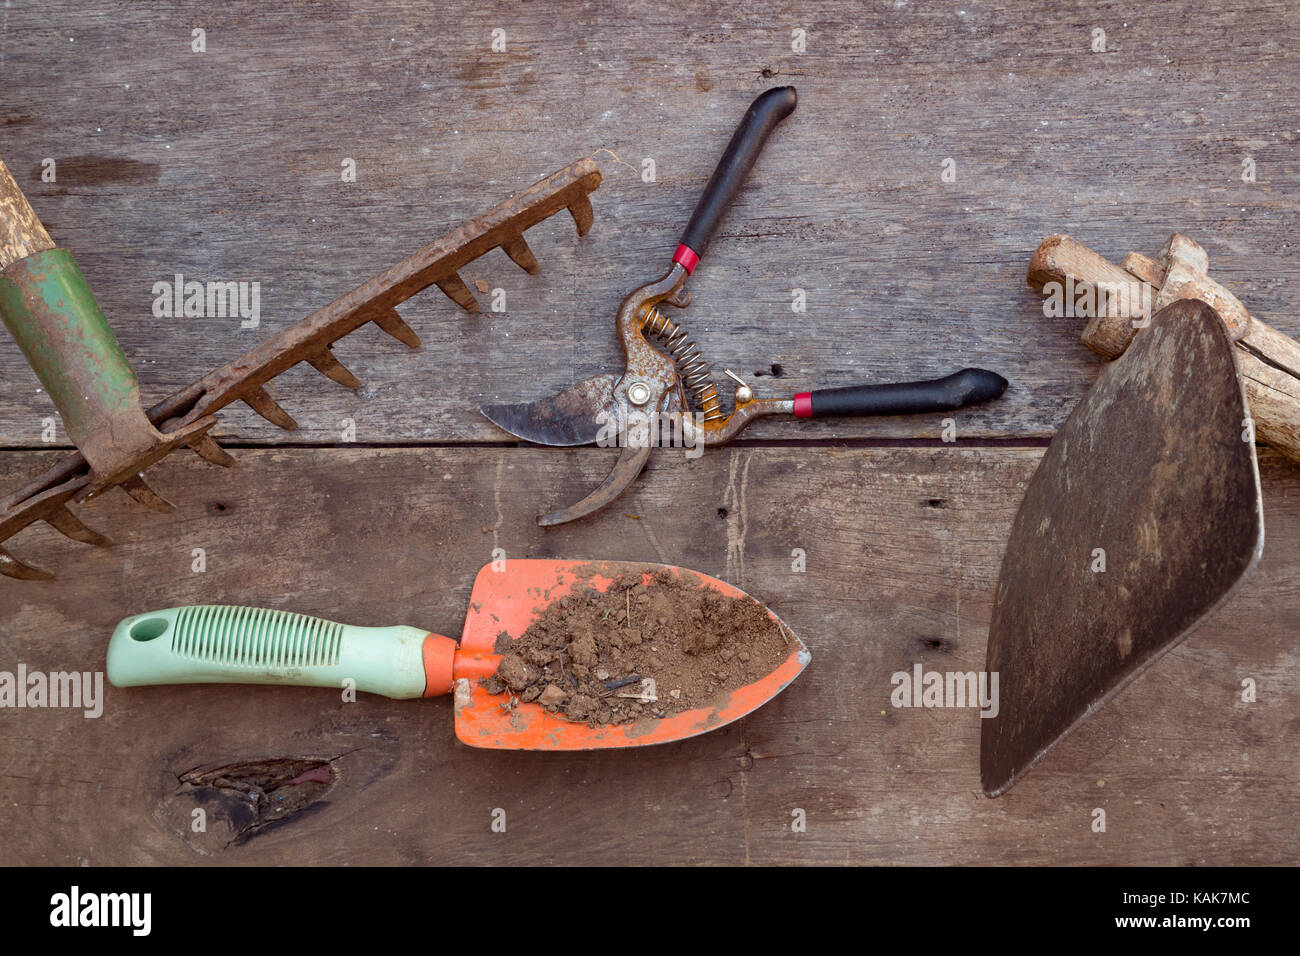 Garden tools, rake, trowel, pruning shear and floral hoe on wooden background, flat lay - Stock Image